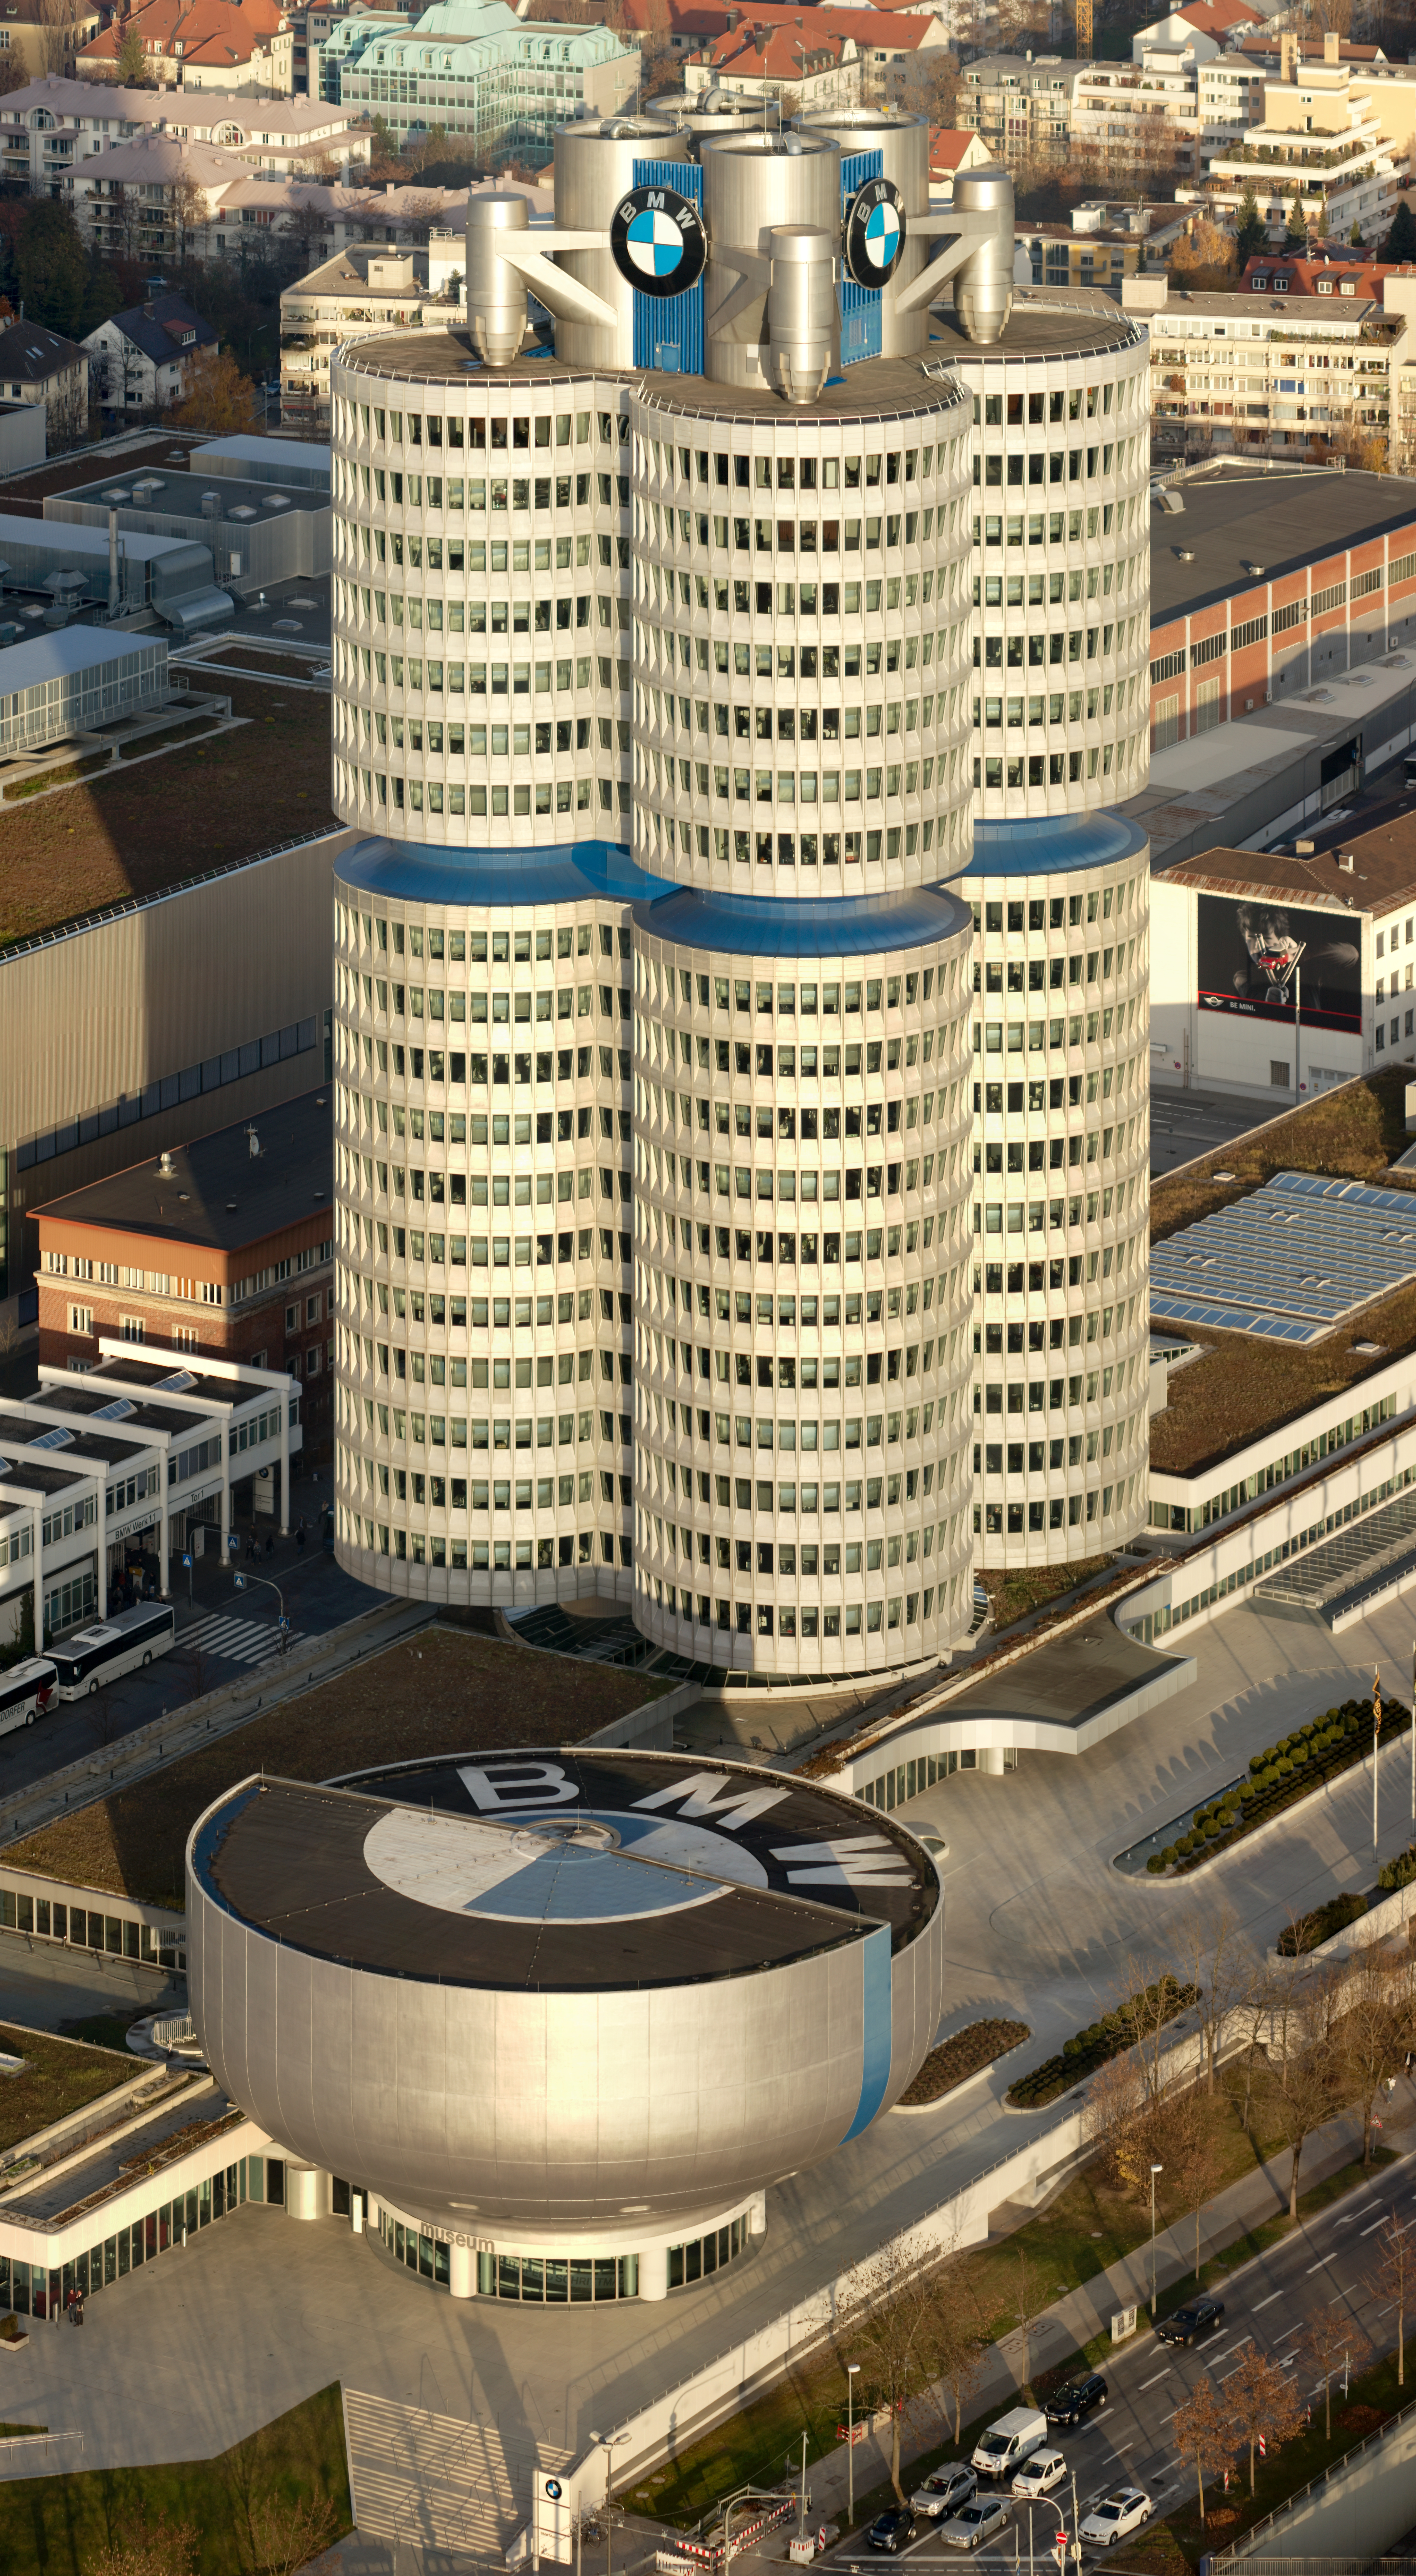 File:BMW tower seen from Olympic tower on a sunny November afternoon